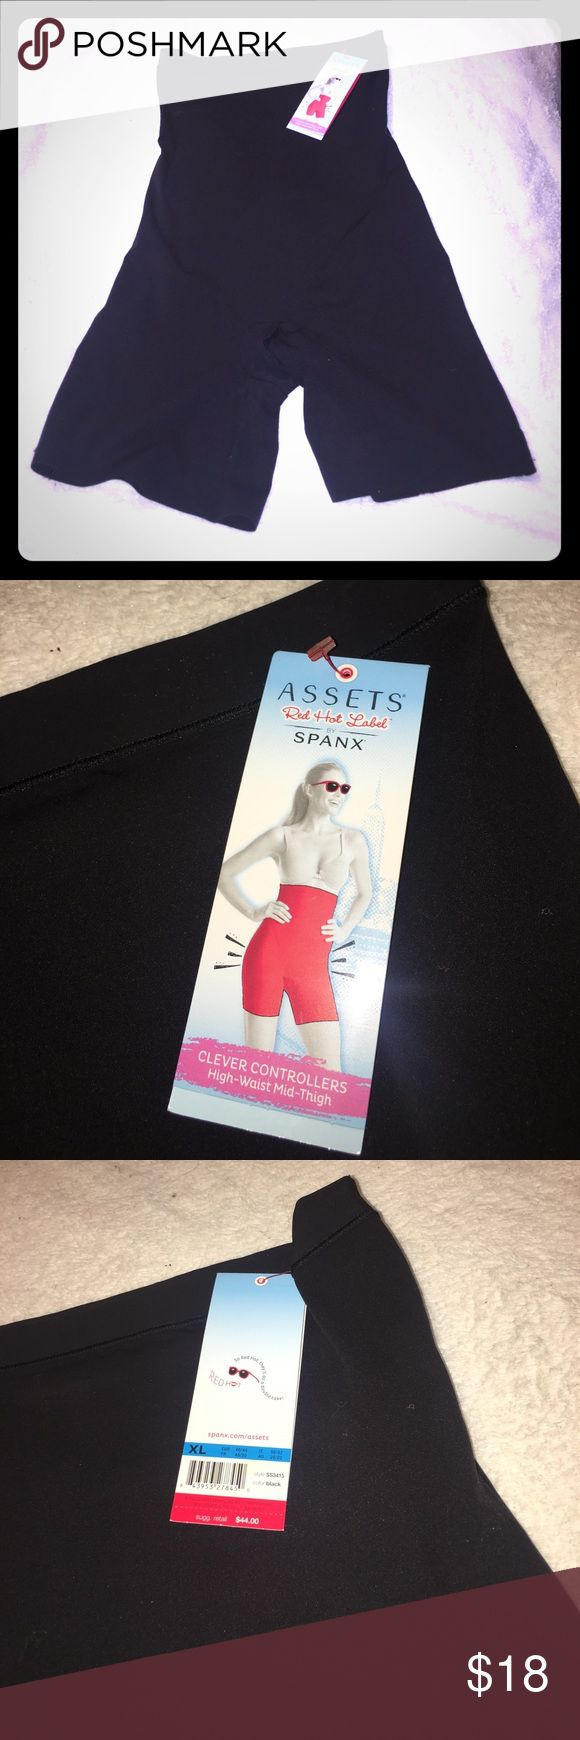 New Assets by Spanx High Waist Mid-Thigh Shaper XL New Assets Red Hot Label by Spanx High Waist Mid-Thigh Shaper xl SPANX Intimates & Sleepwear Shapewear